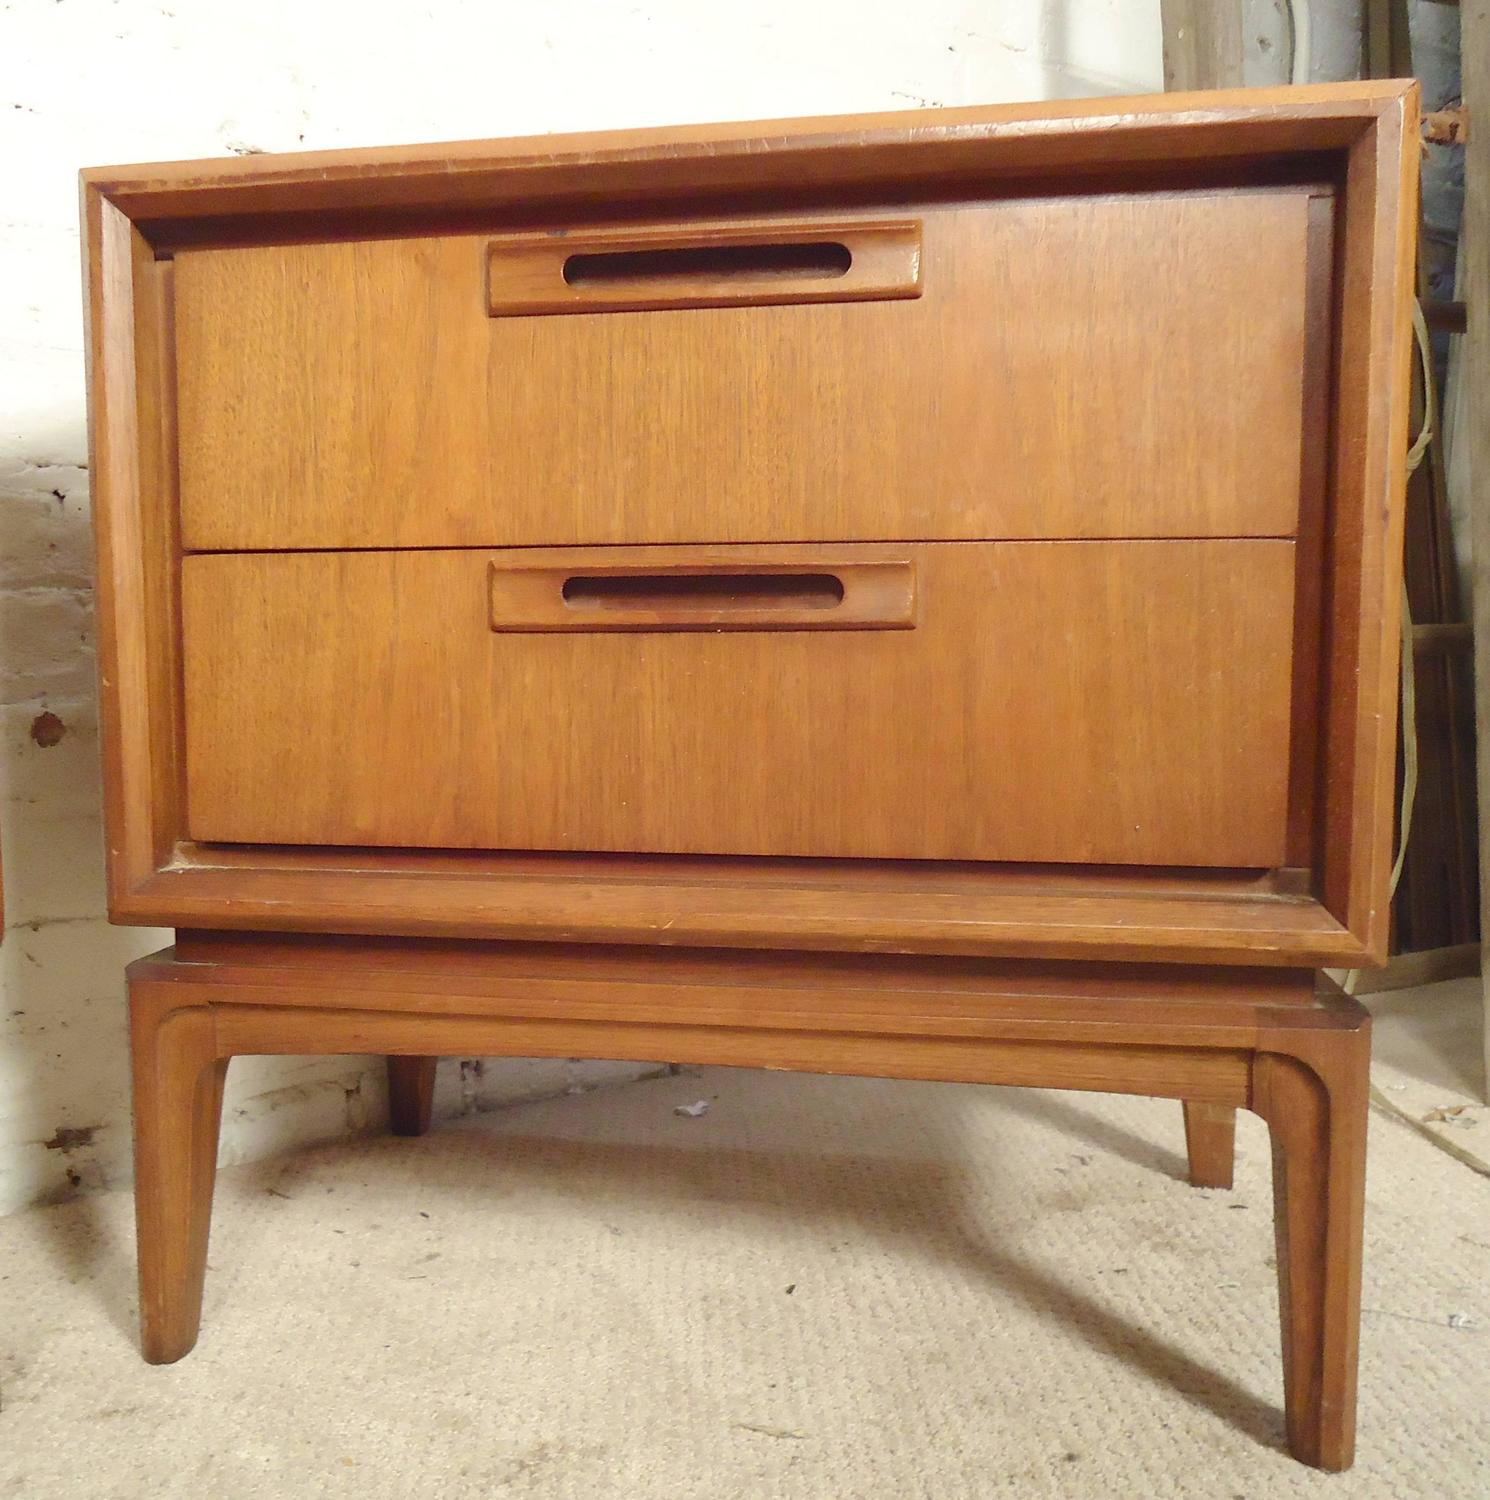 Mid century modern nightstands at 1stdibs